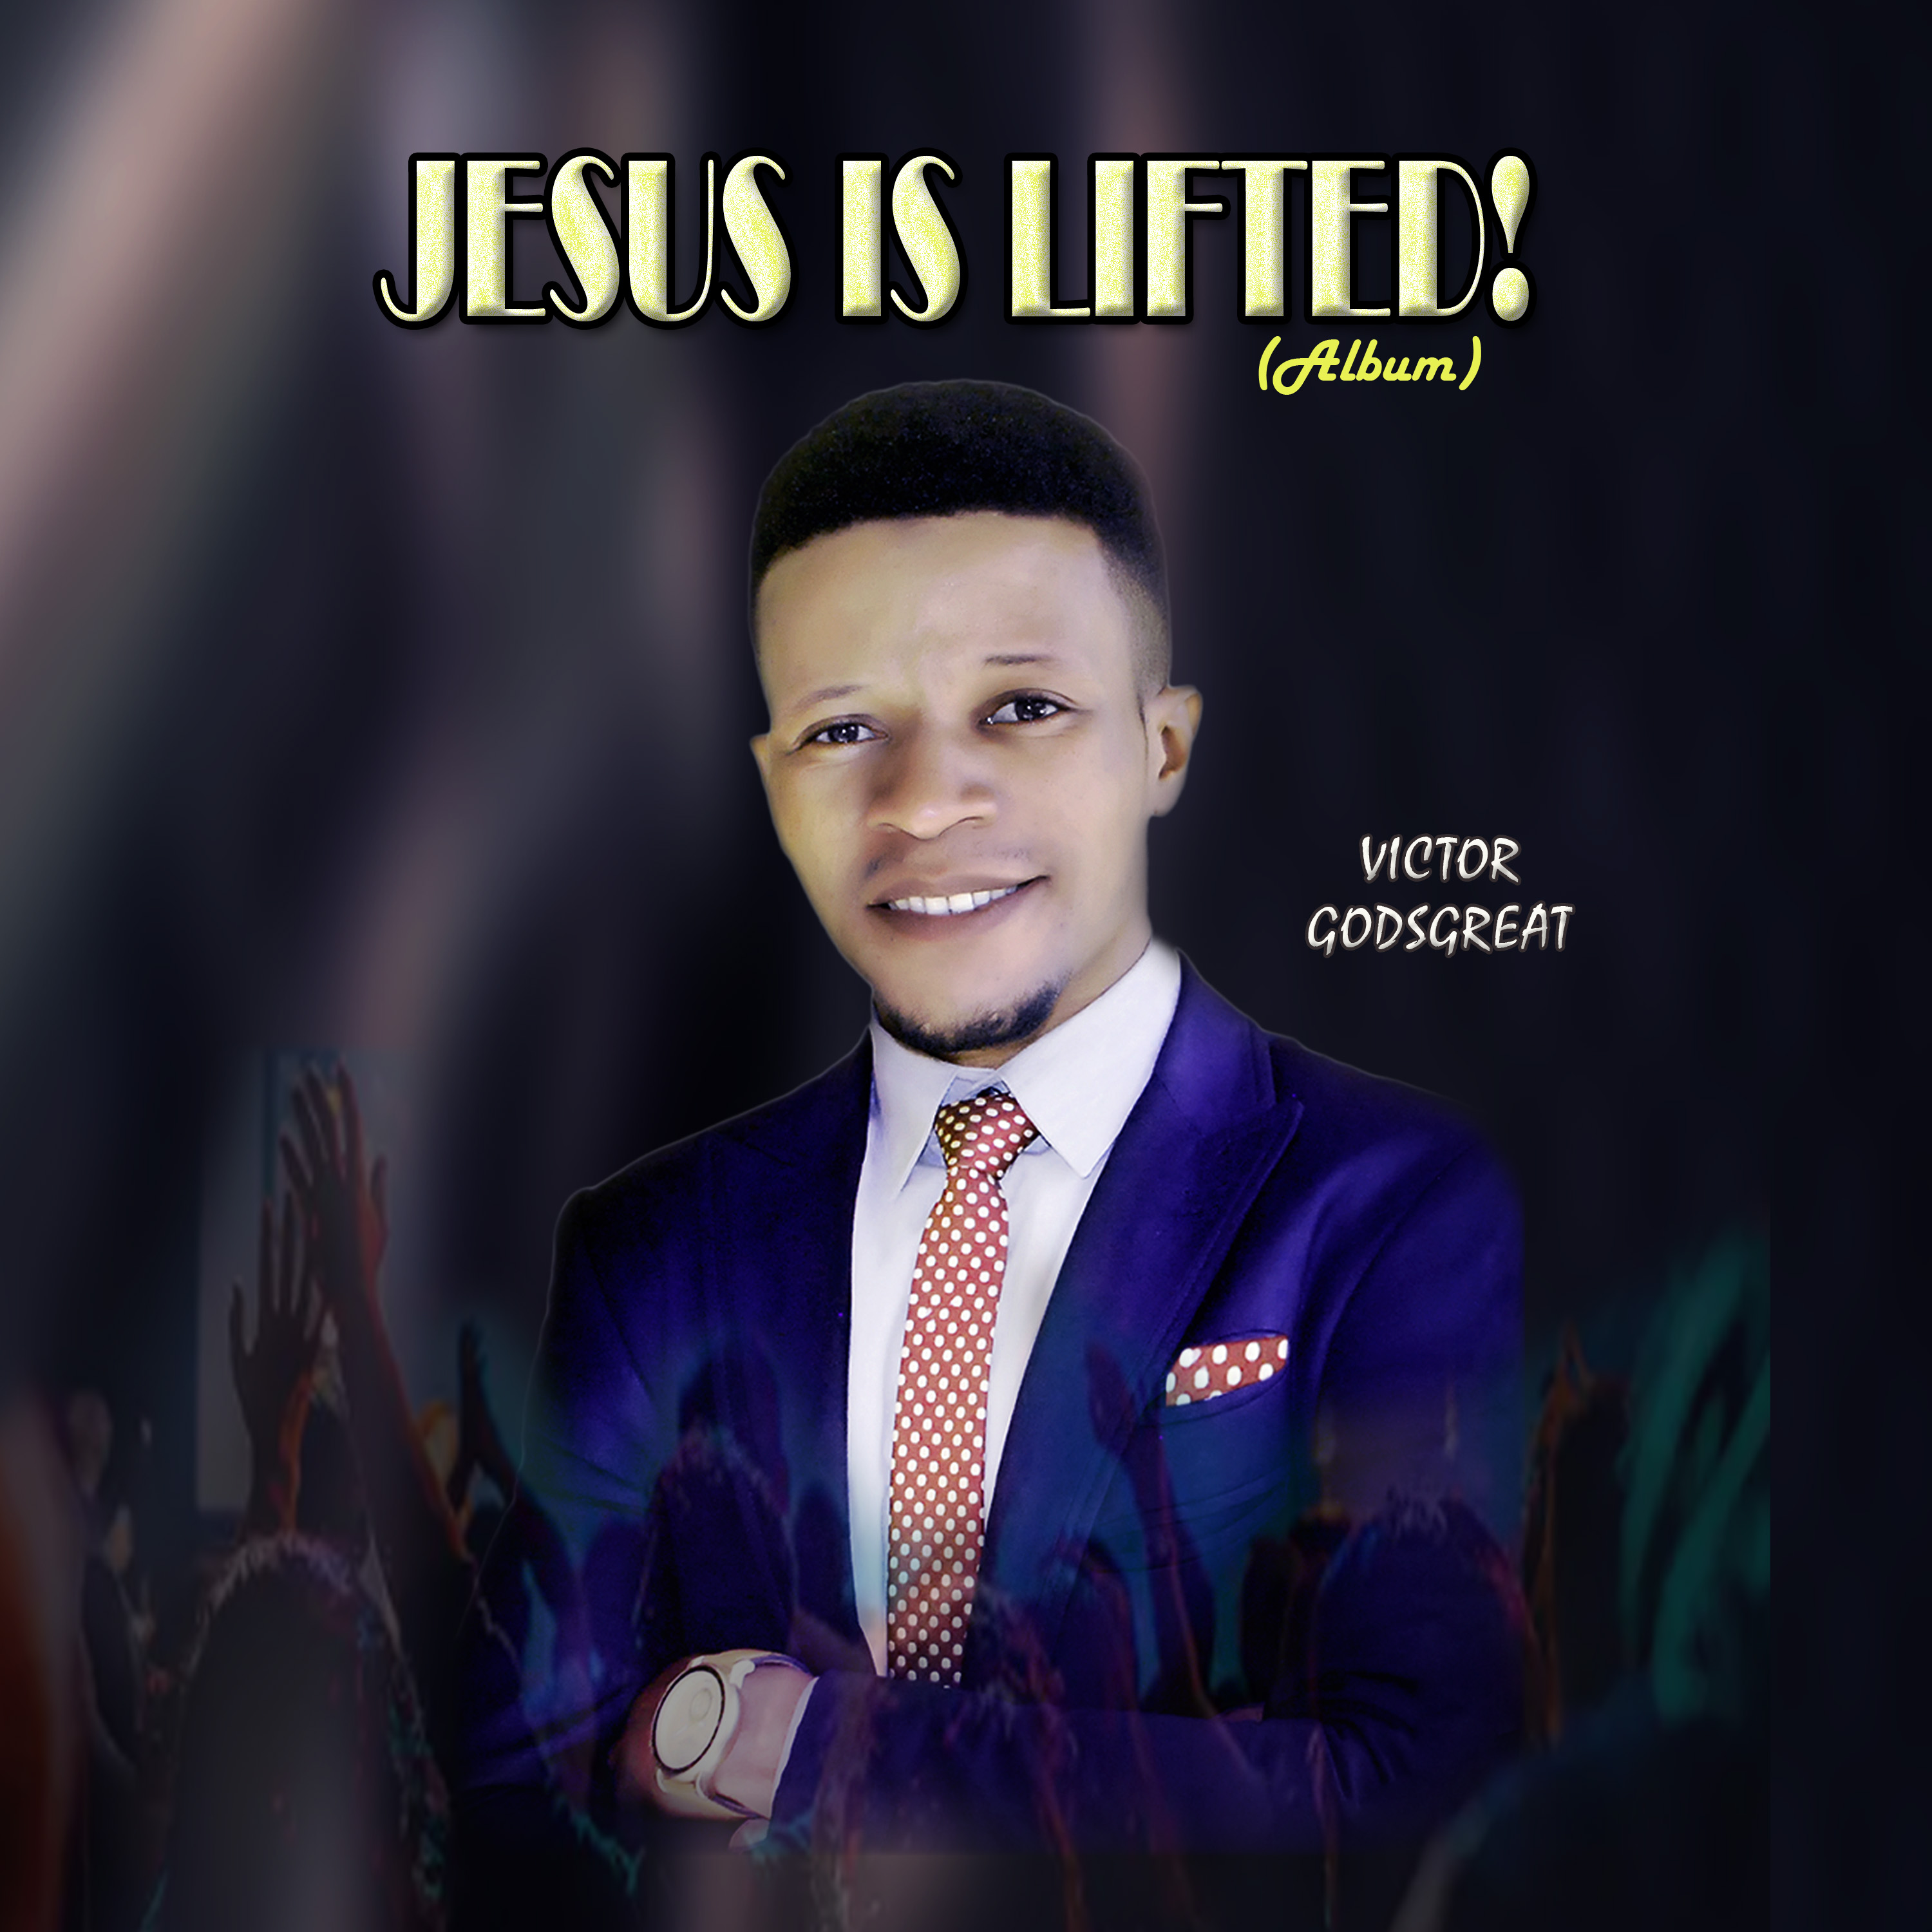 BE LIFTED - Victor Godsgreat